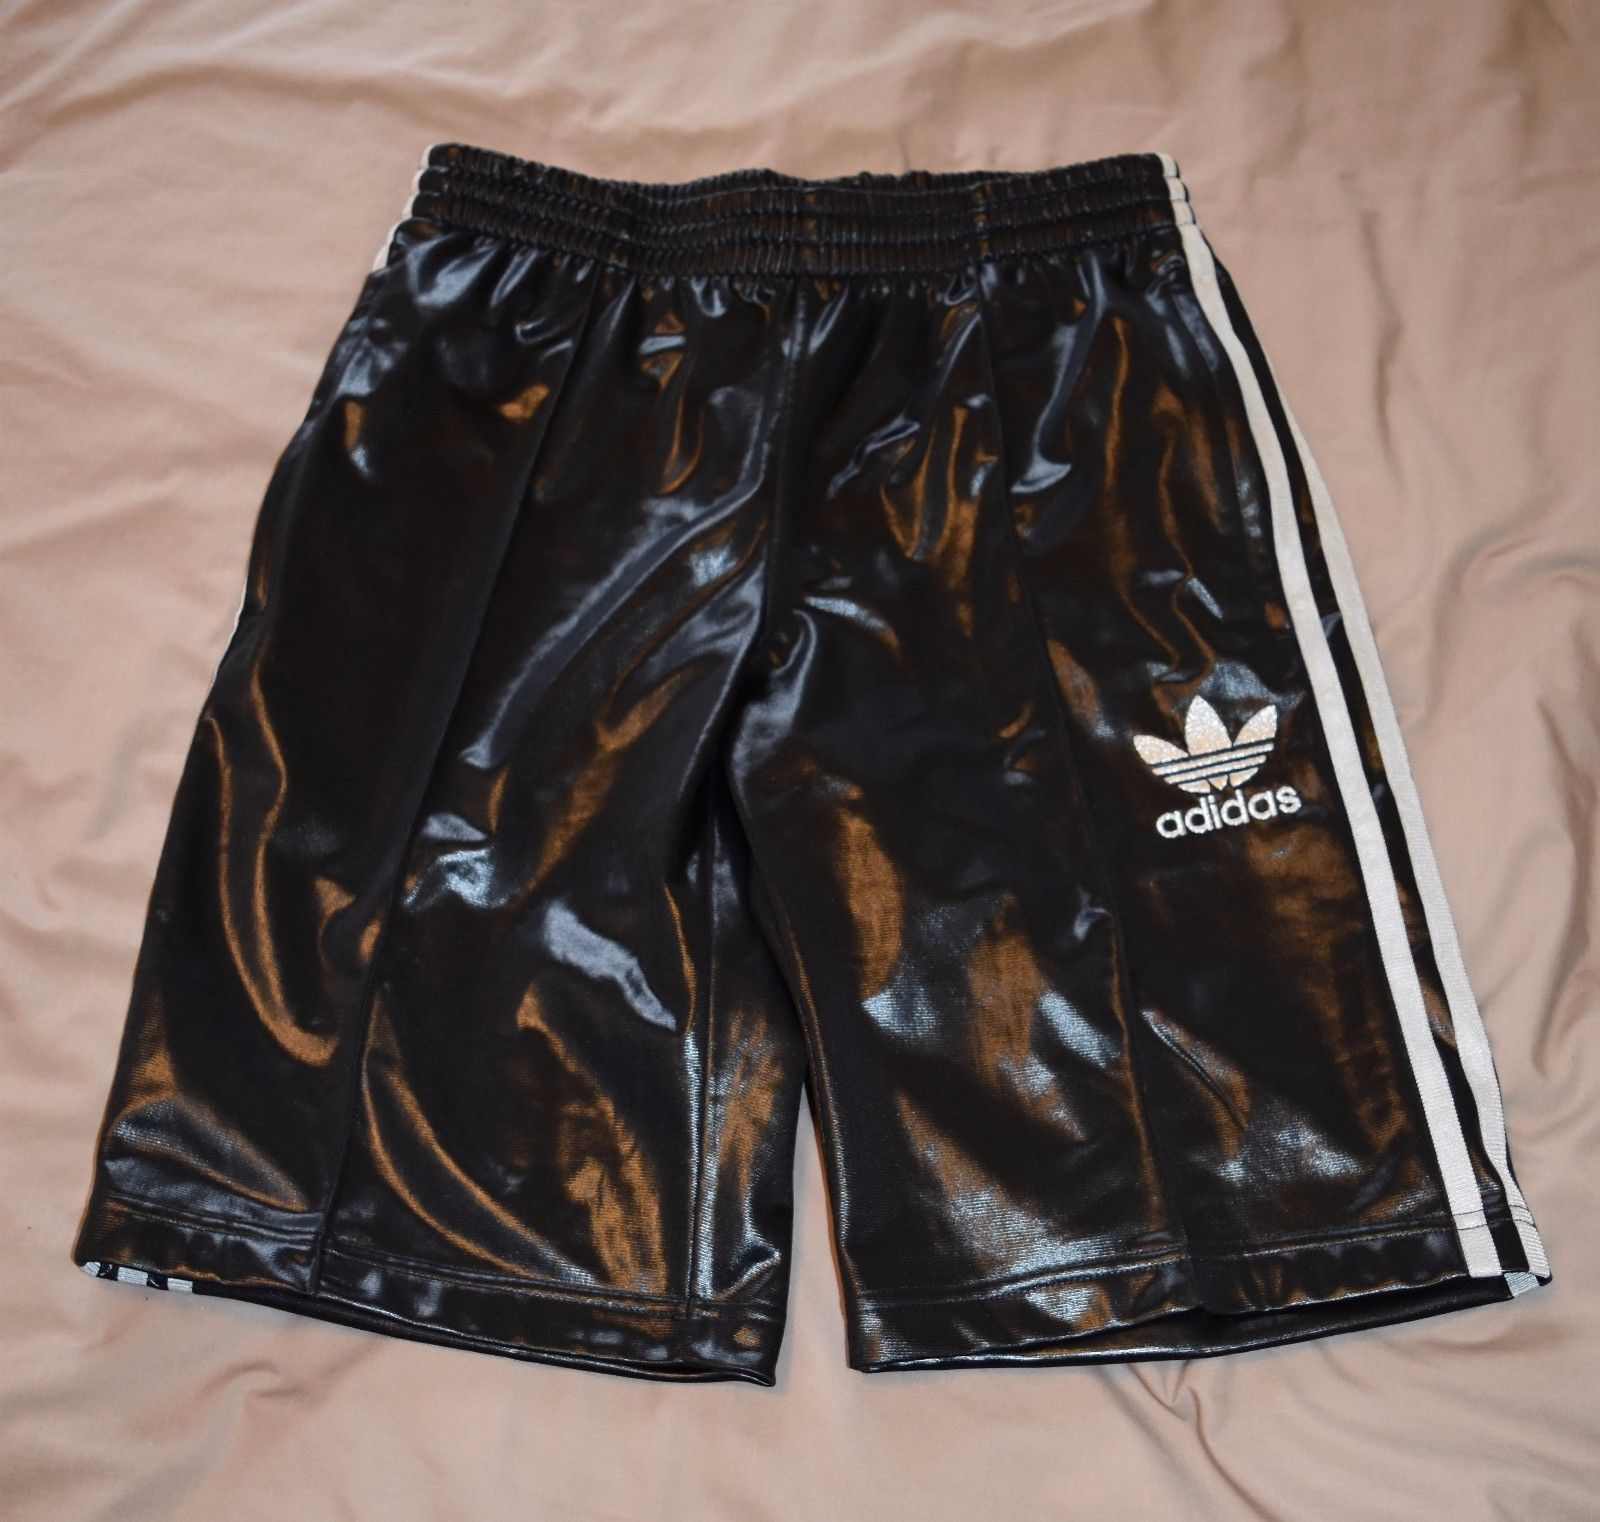 100% authentisch suche nach authentisch elegantes Aussehen Adidas Chile 62 Shorts - Black & Silver - RARE | HOT ...